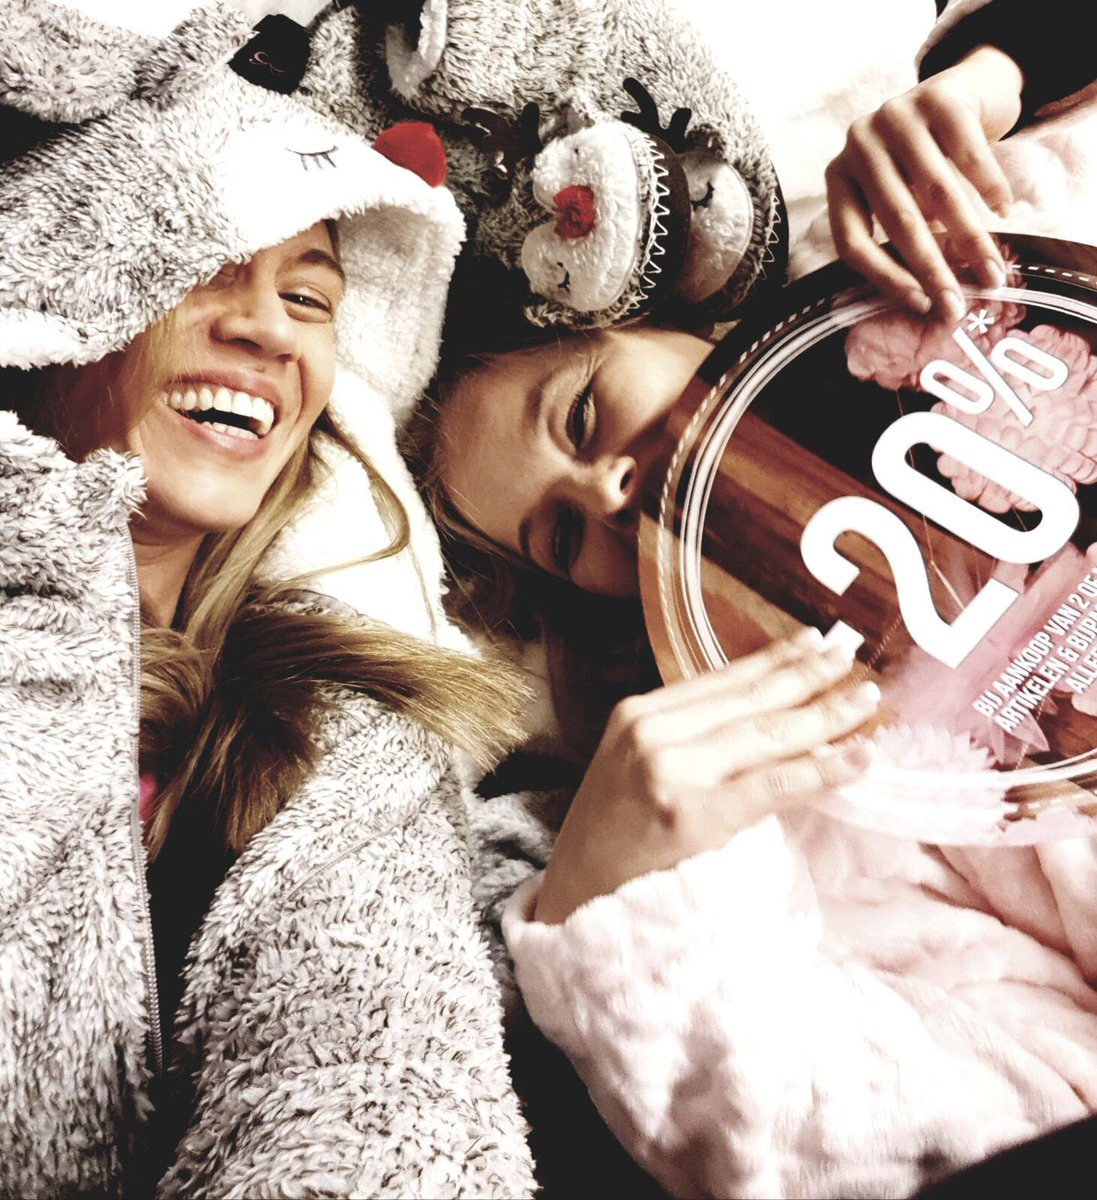 If loving Cosy is a crime, we plead guilty  -20% when you buy more than 2 items #hunkemöller #cosy #eindhoven Rechtestraat  come and see  <br>http://pic.twitter.com/3zMj8XExK8